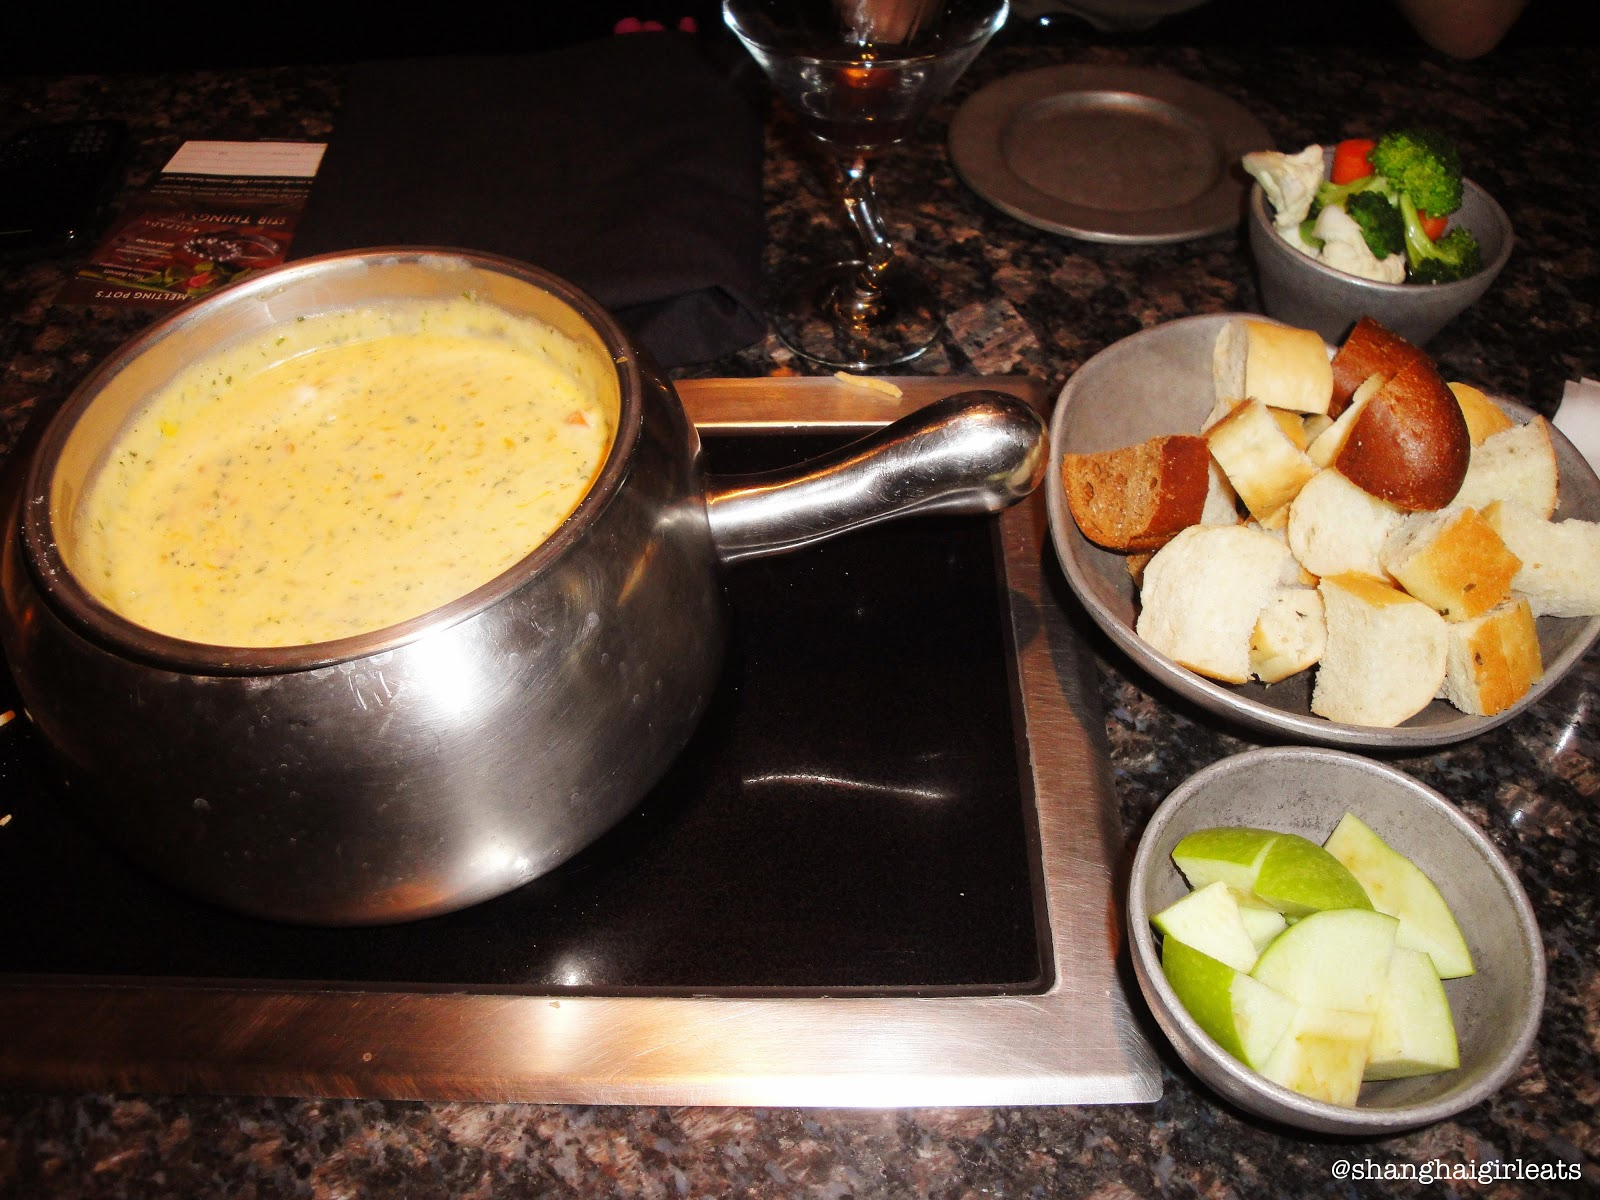 1st Course: Creamy tomato cheese fondue with bread, veggies, and ...